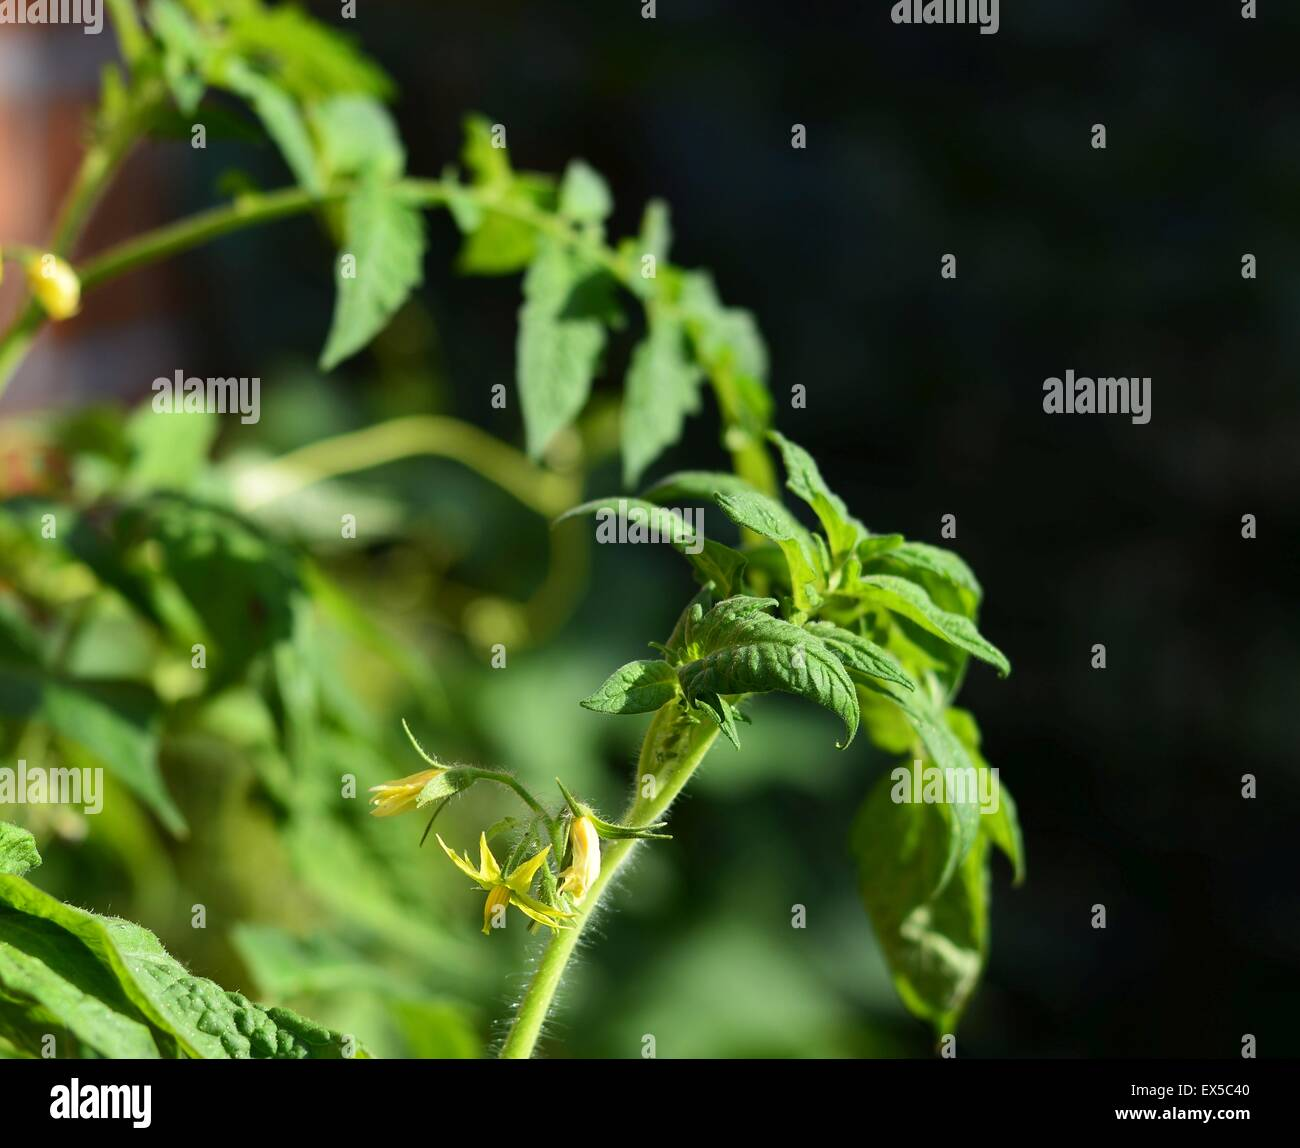 Stems of tomatoes - Stock Image